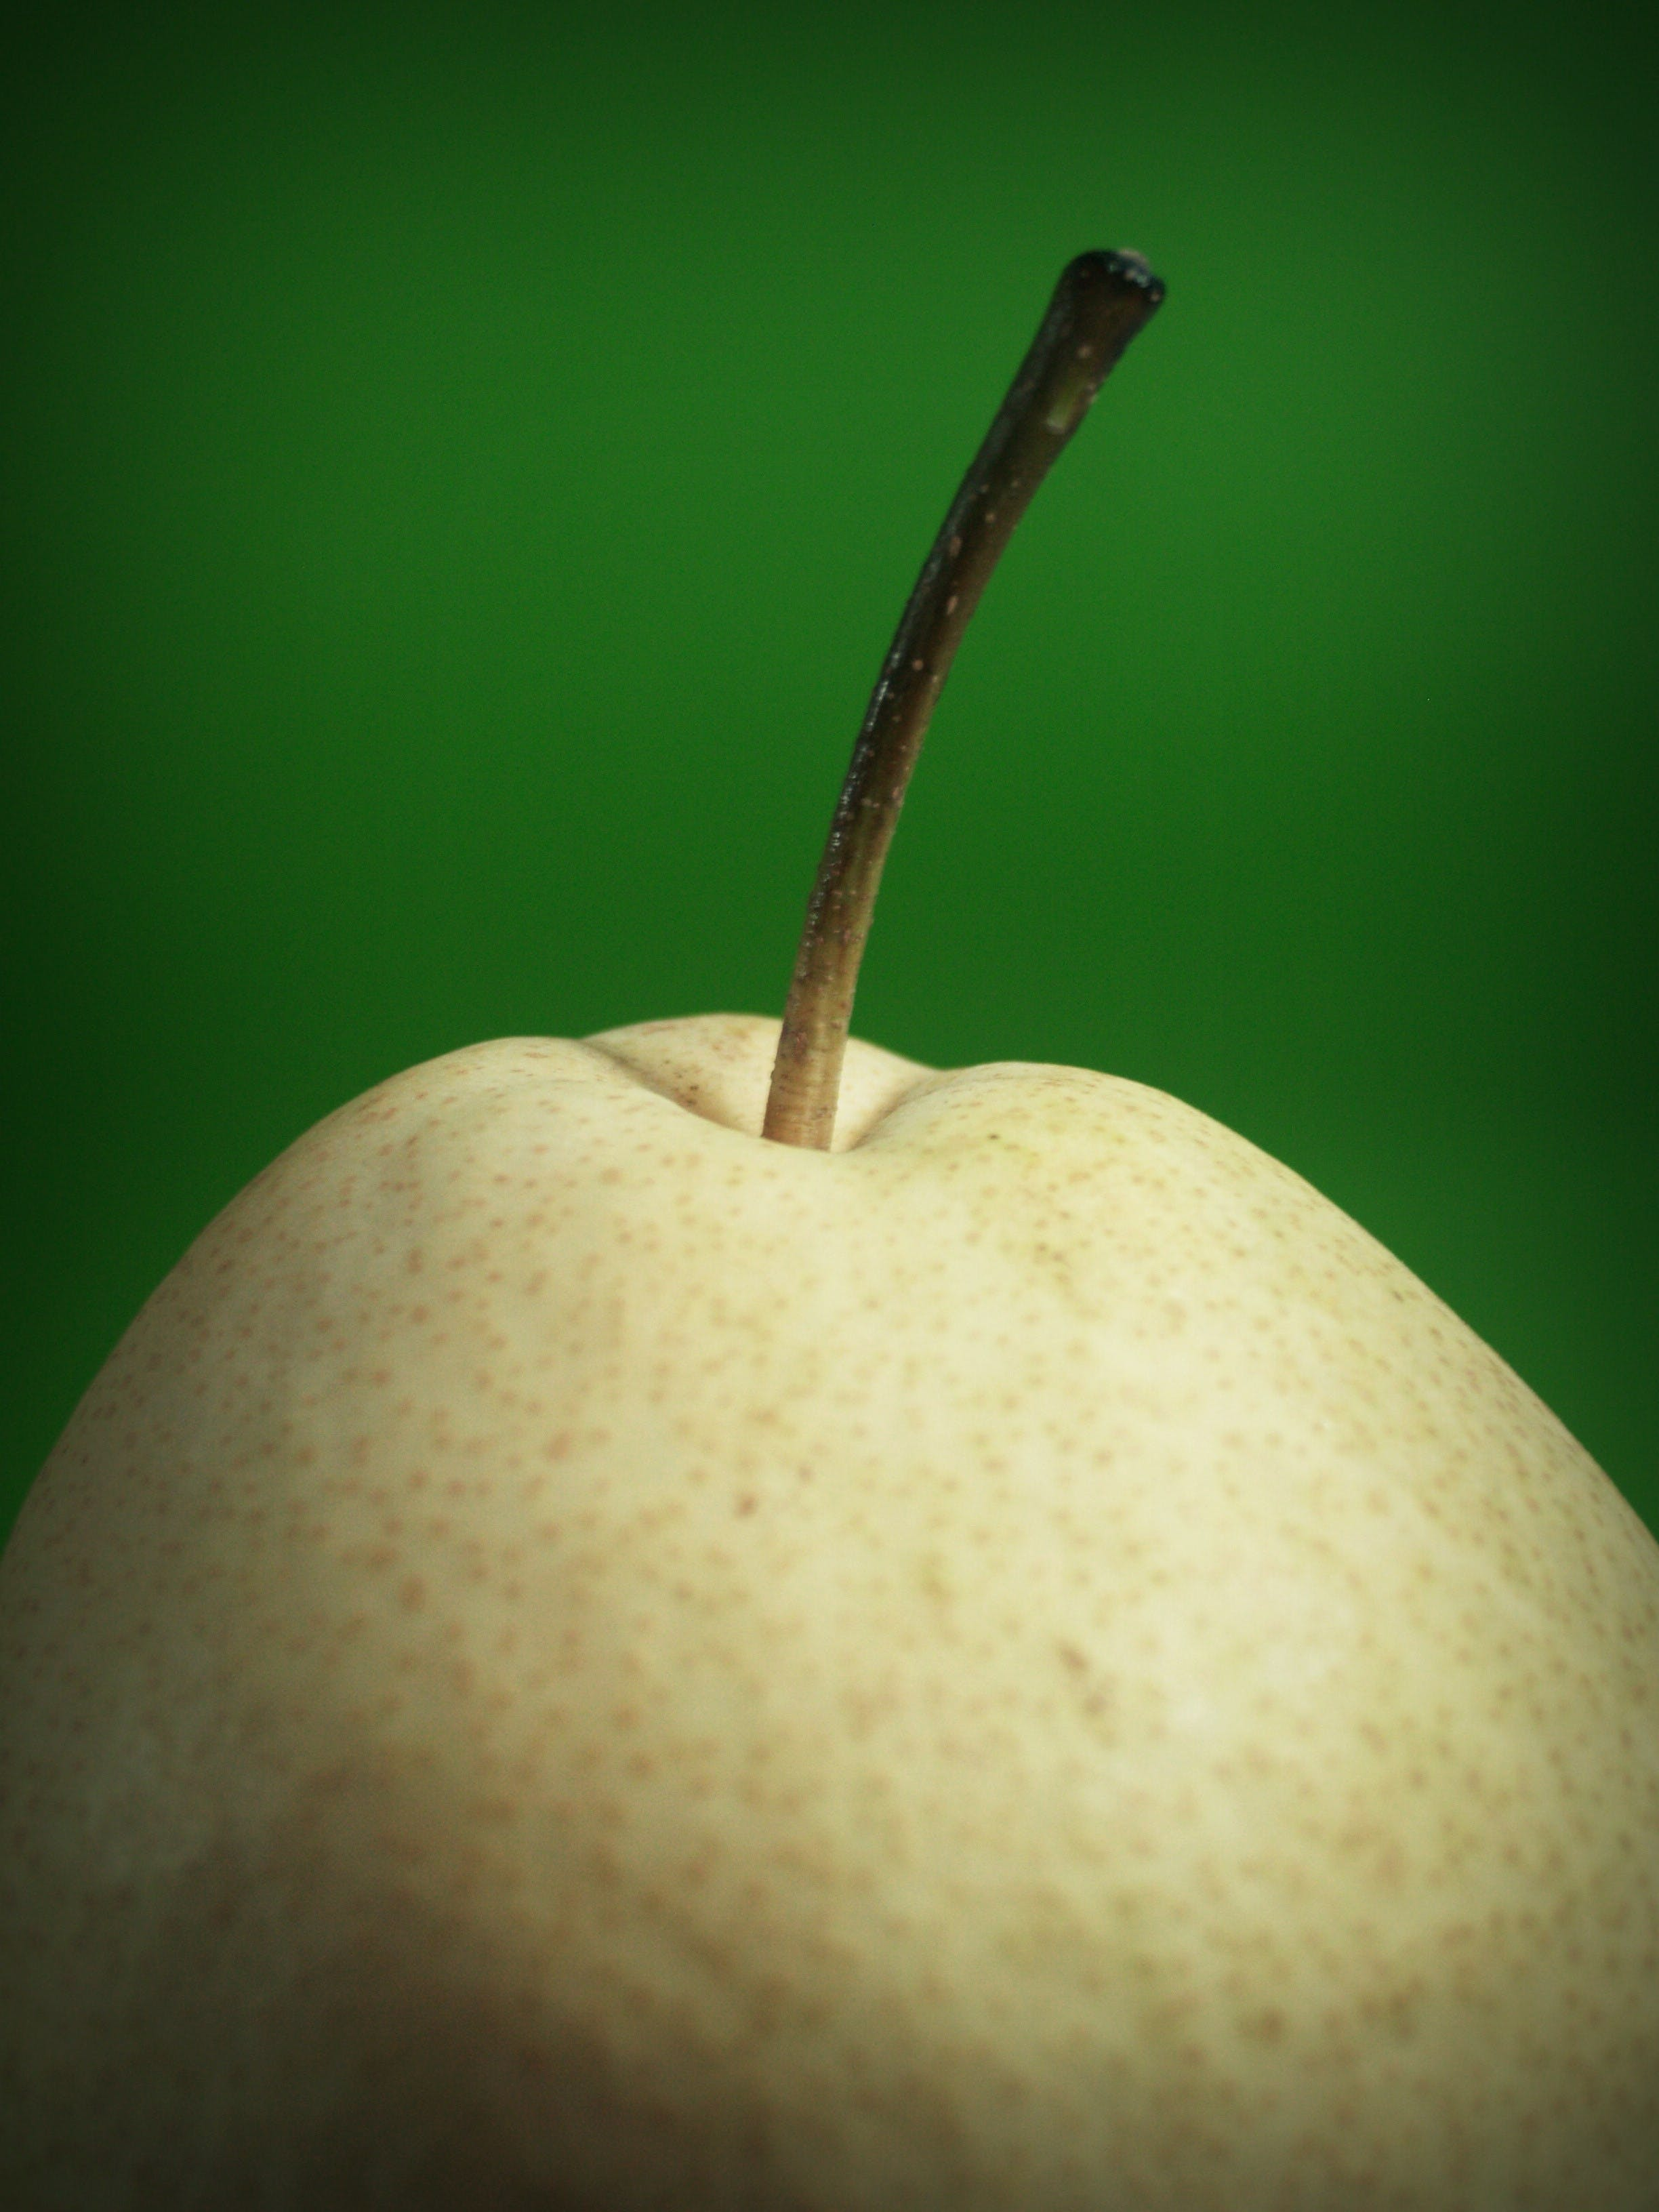 Yellow Peach Fruit in Close-up Photography